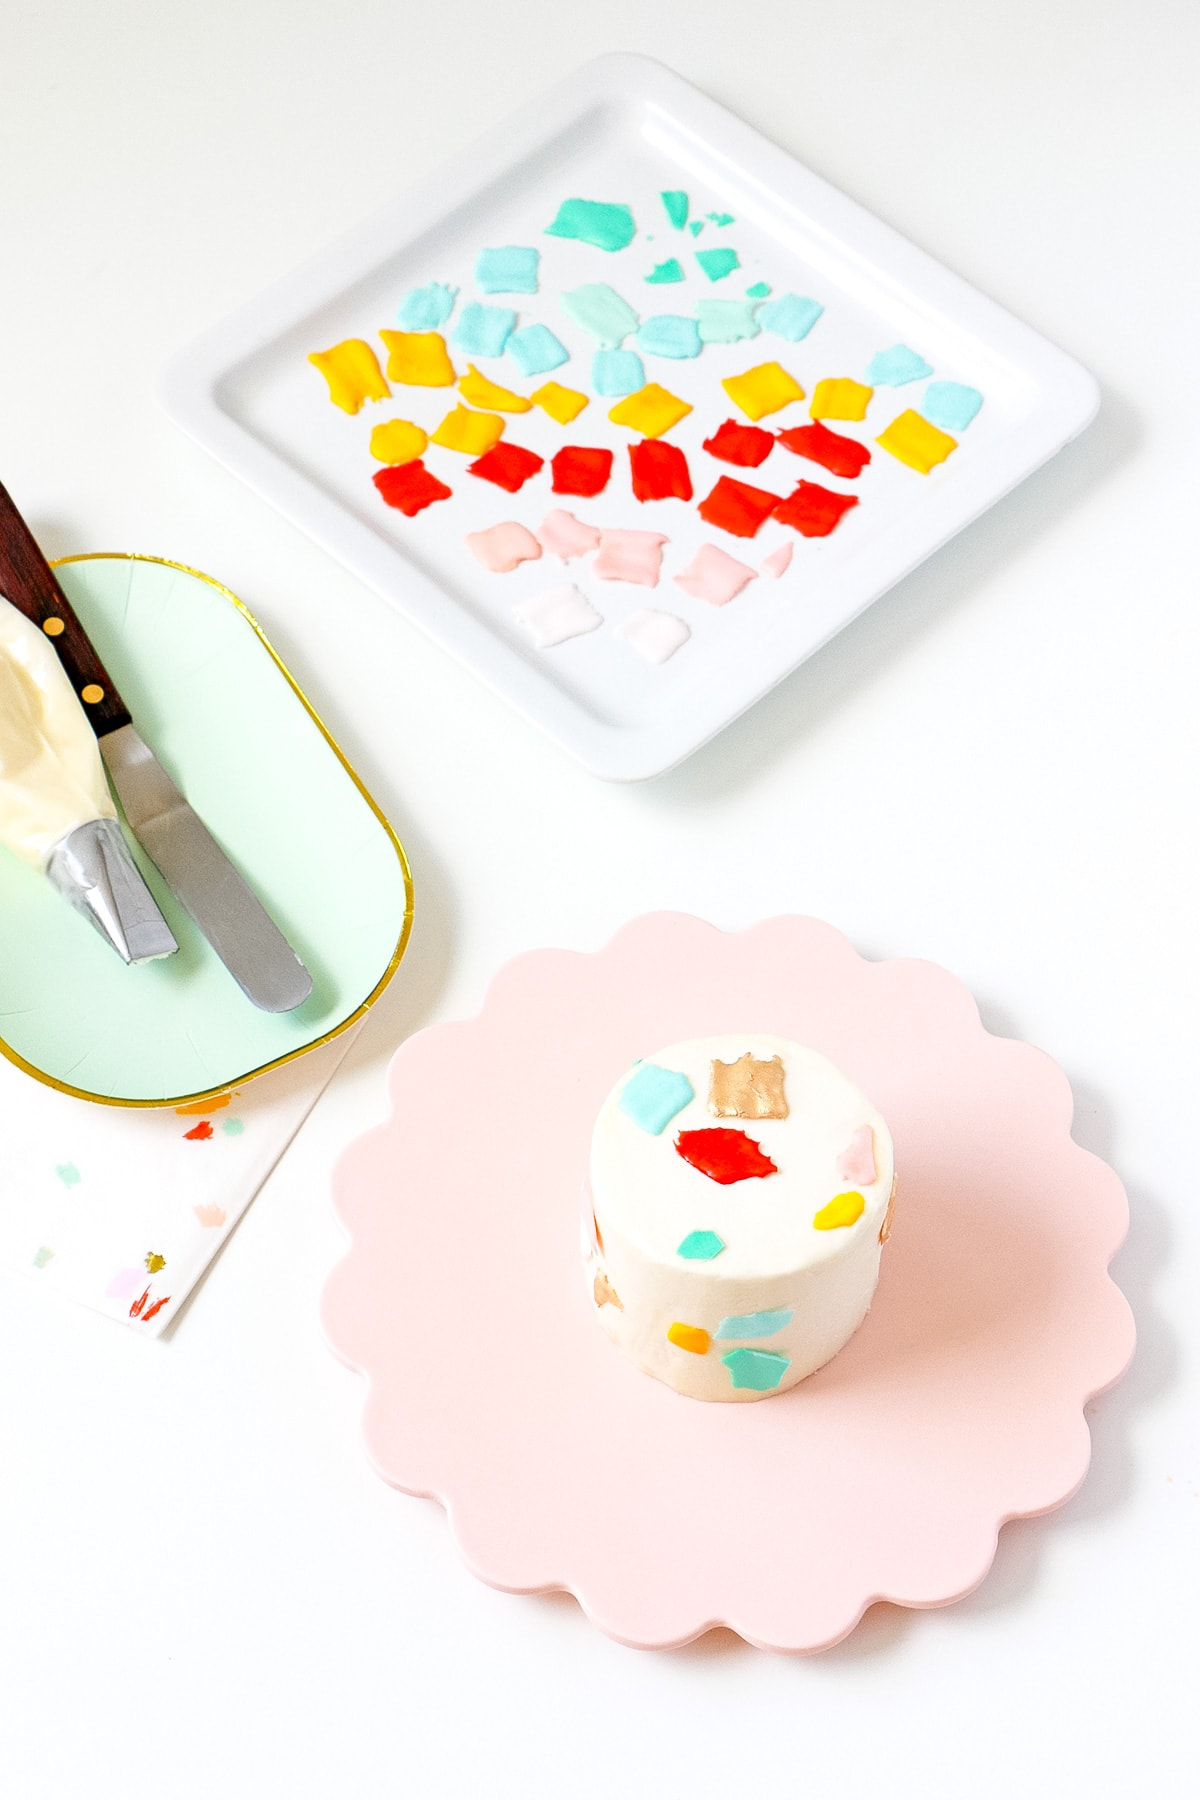 DIY Mini Confetti Print Cakes by top Houston lifestyle blogger Ashley Rose of Sugar and Cloth #recipe #diy #cake #entertaining #parties